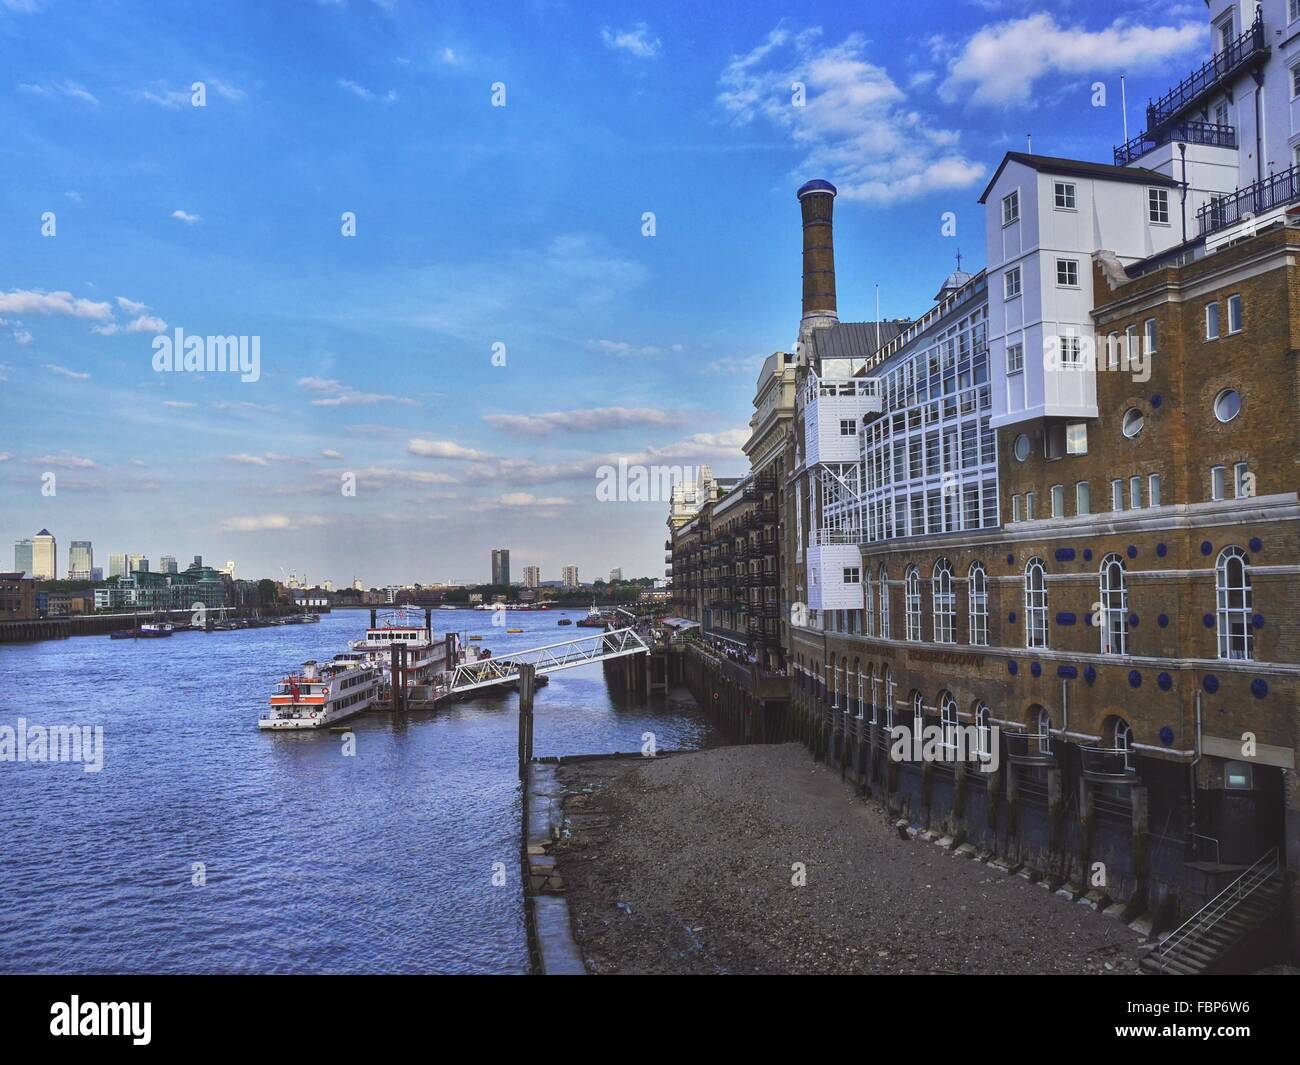 Riverfront Houses And Passenger Ship - Stock Image